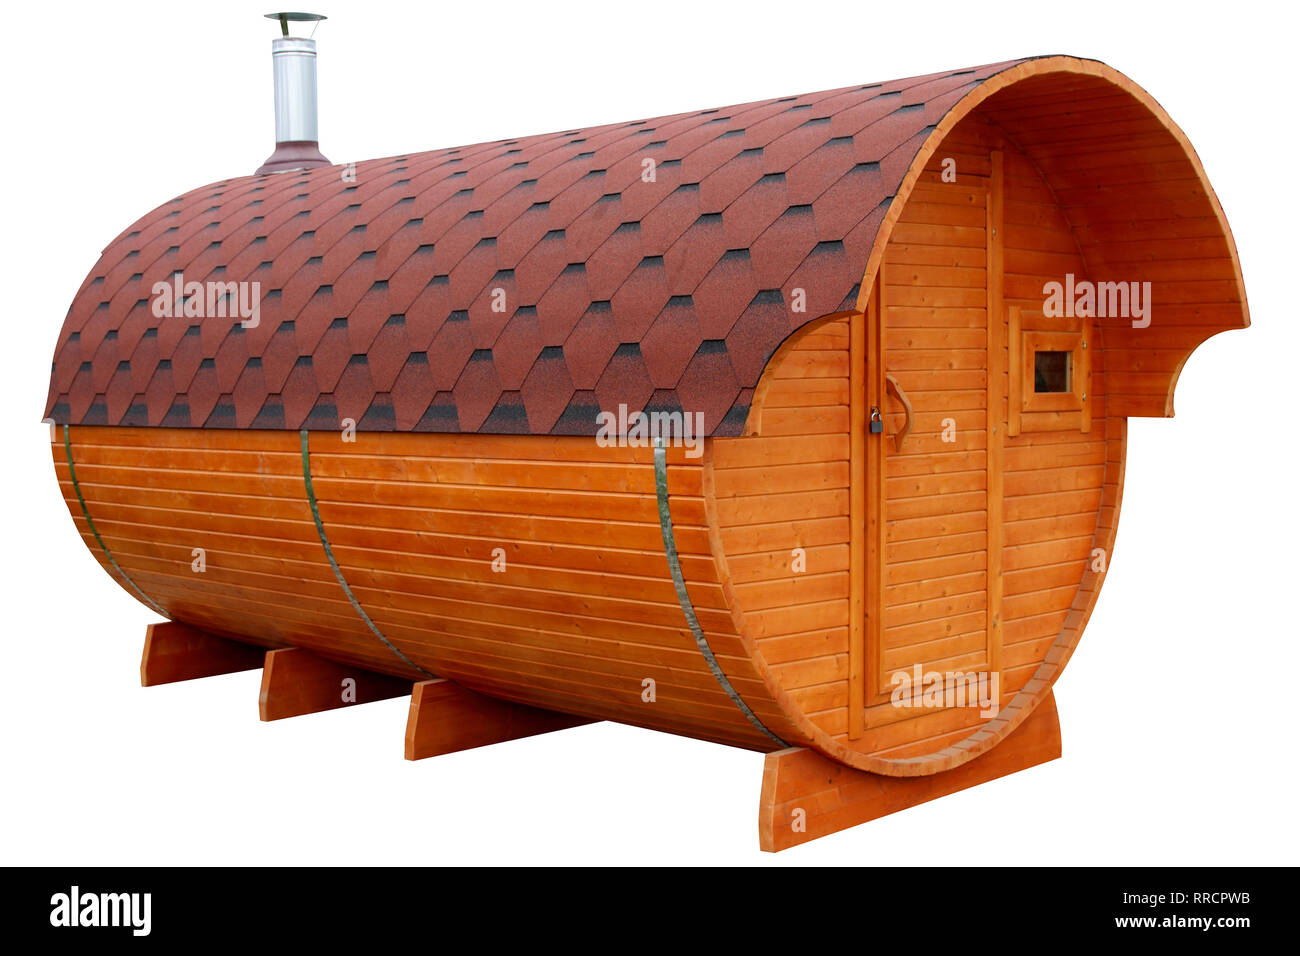 Mobile bath in the form of a wooden barrel isolated on white background. - Stock Image